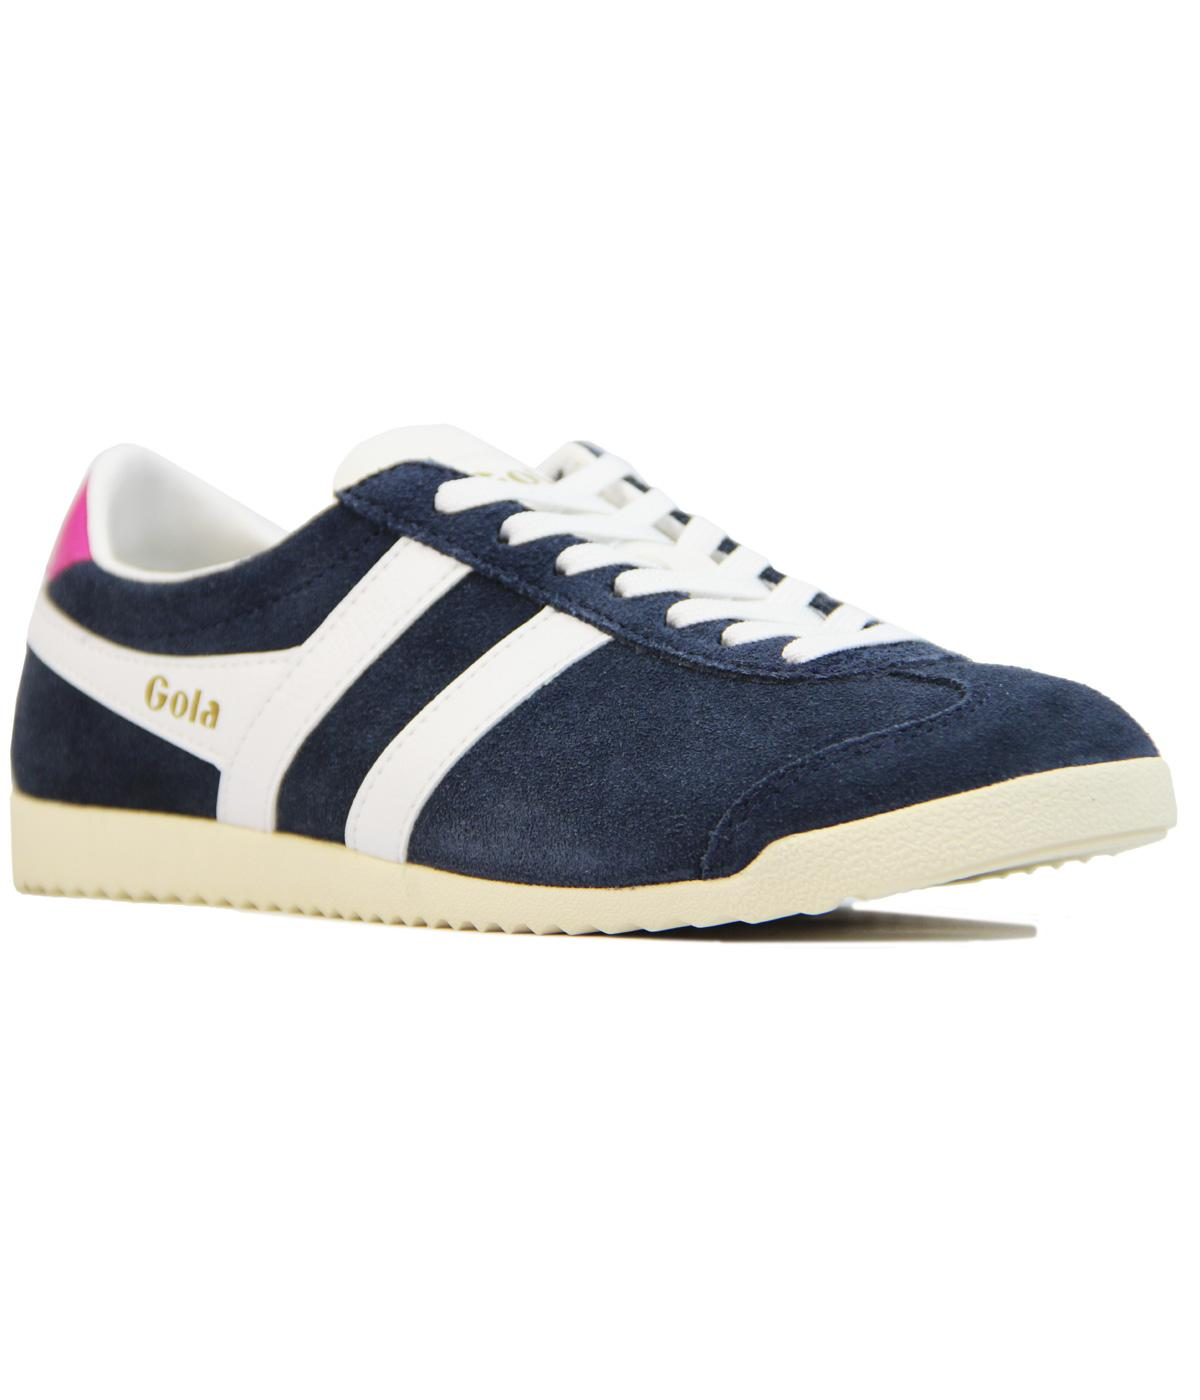 competitive price 2119b dd336 GOLA Bullet Womens Retro Suede Trainers NAVY